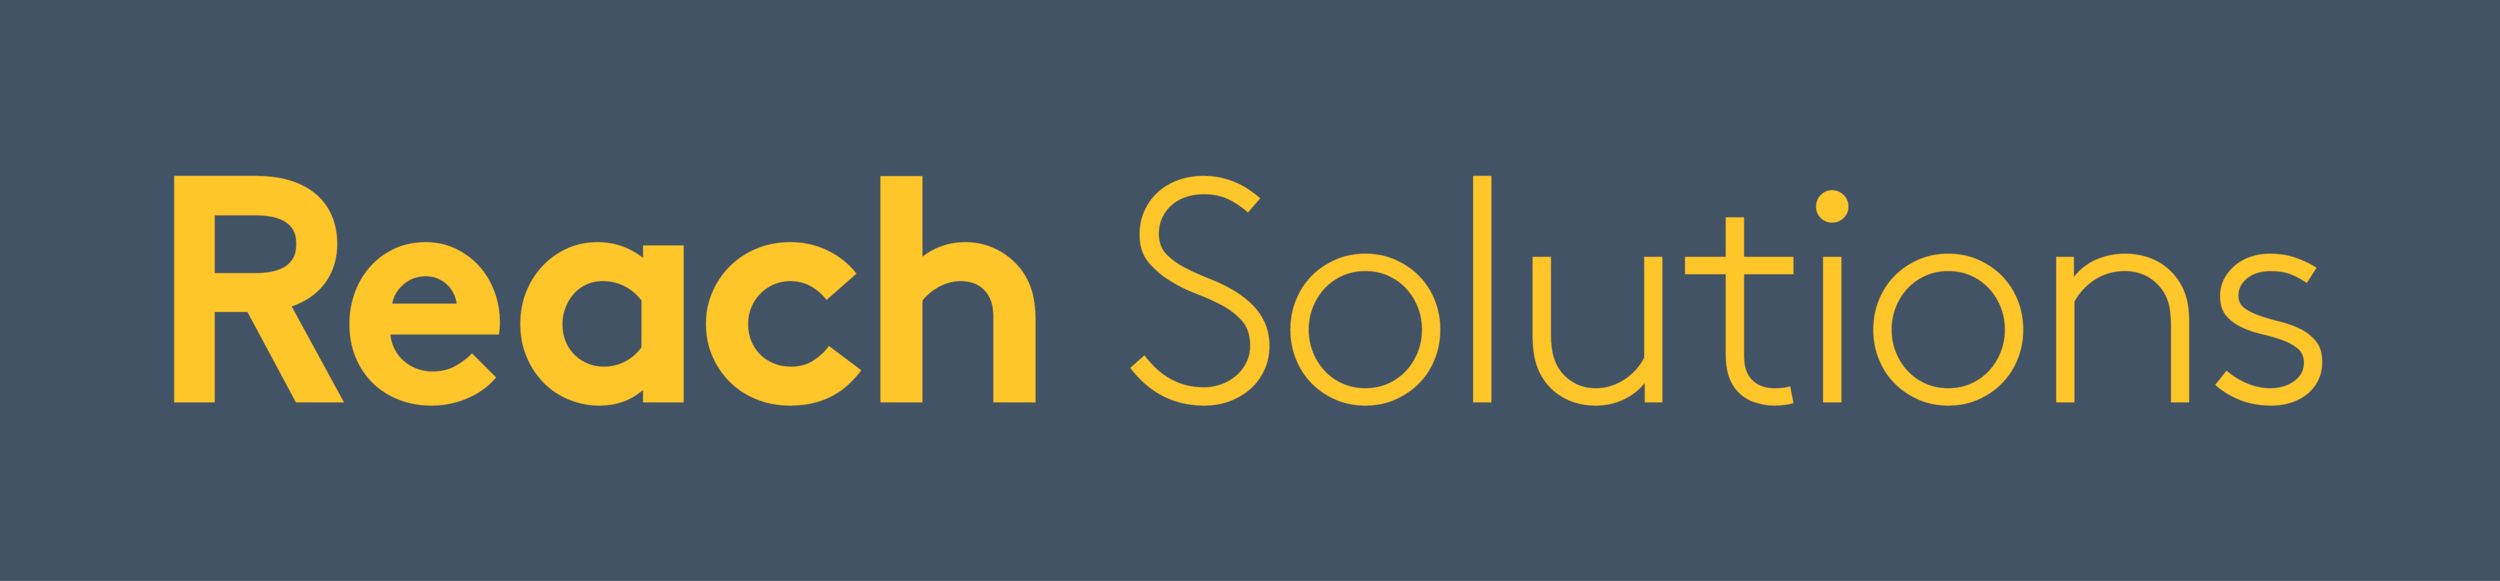 Reach Solutions - Yellow on Blue - 360dpi.png